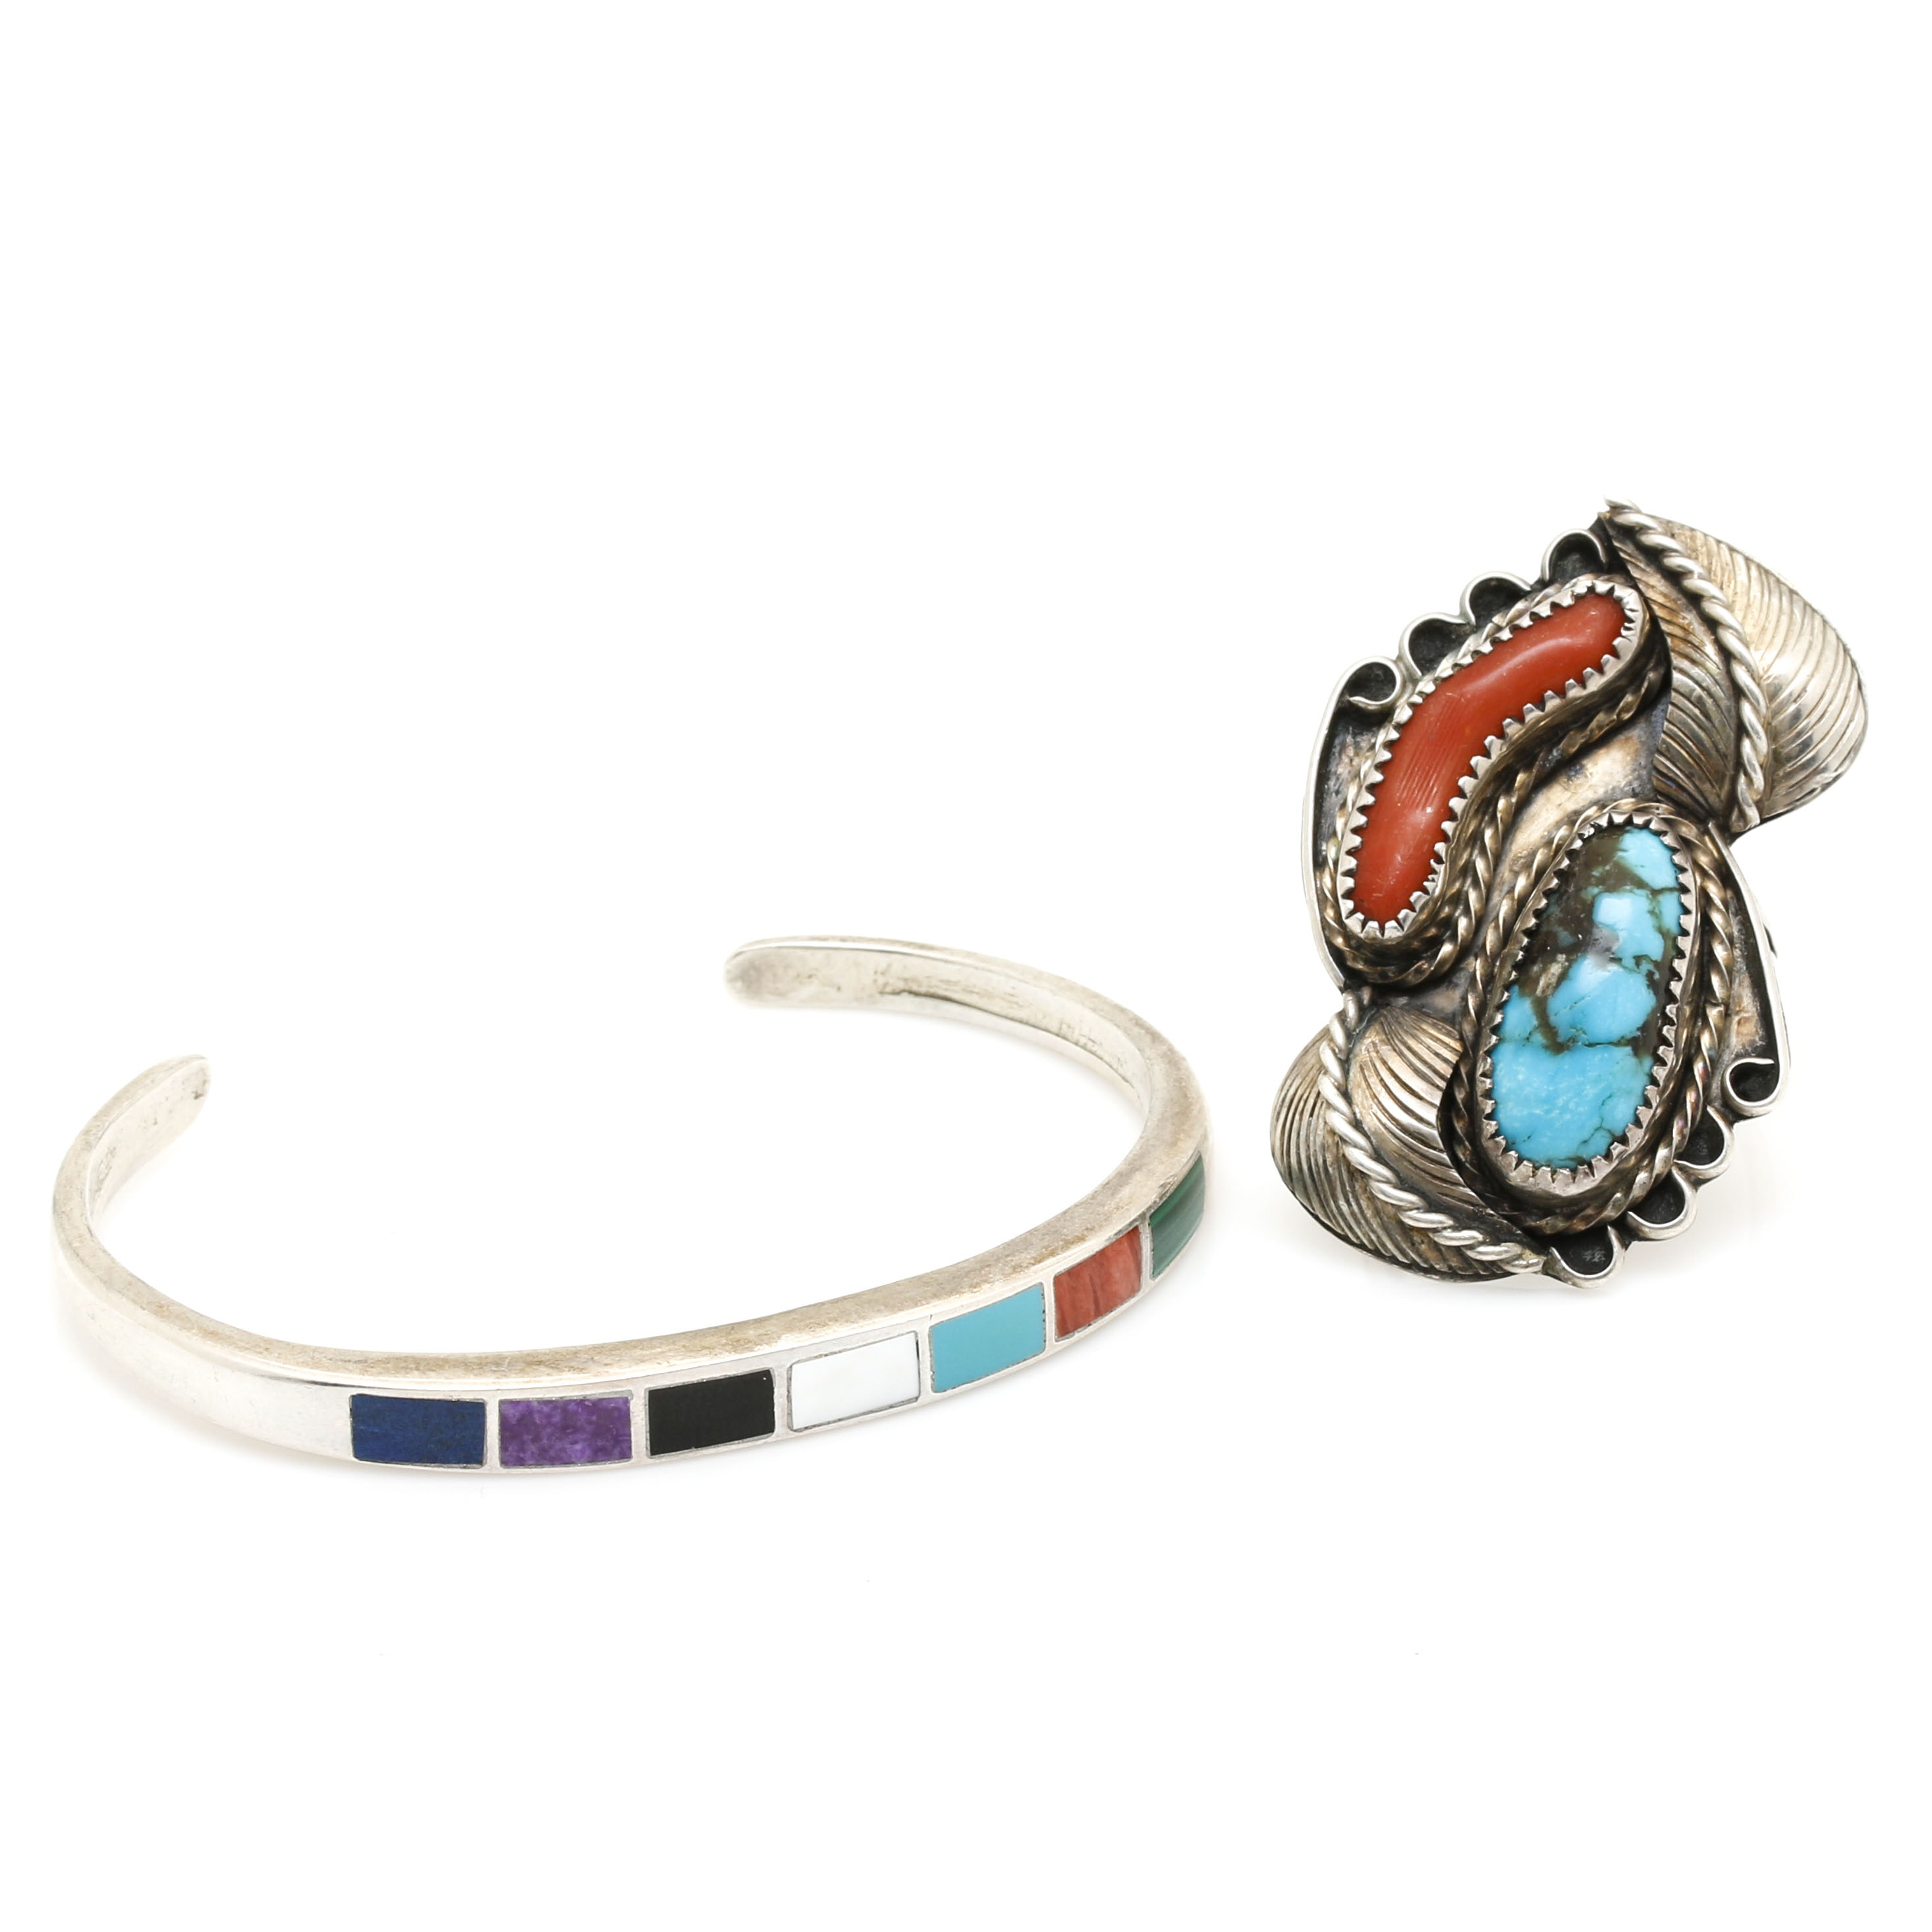 Navajo Sterling Silver Gemstone Jewelry Featuring Raymond Yazzie and Mary and Richard Thomas